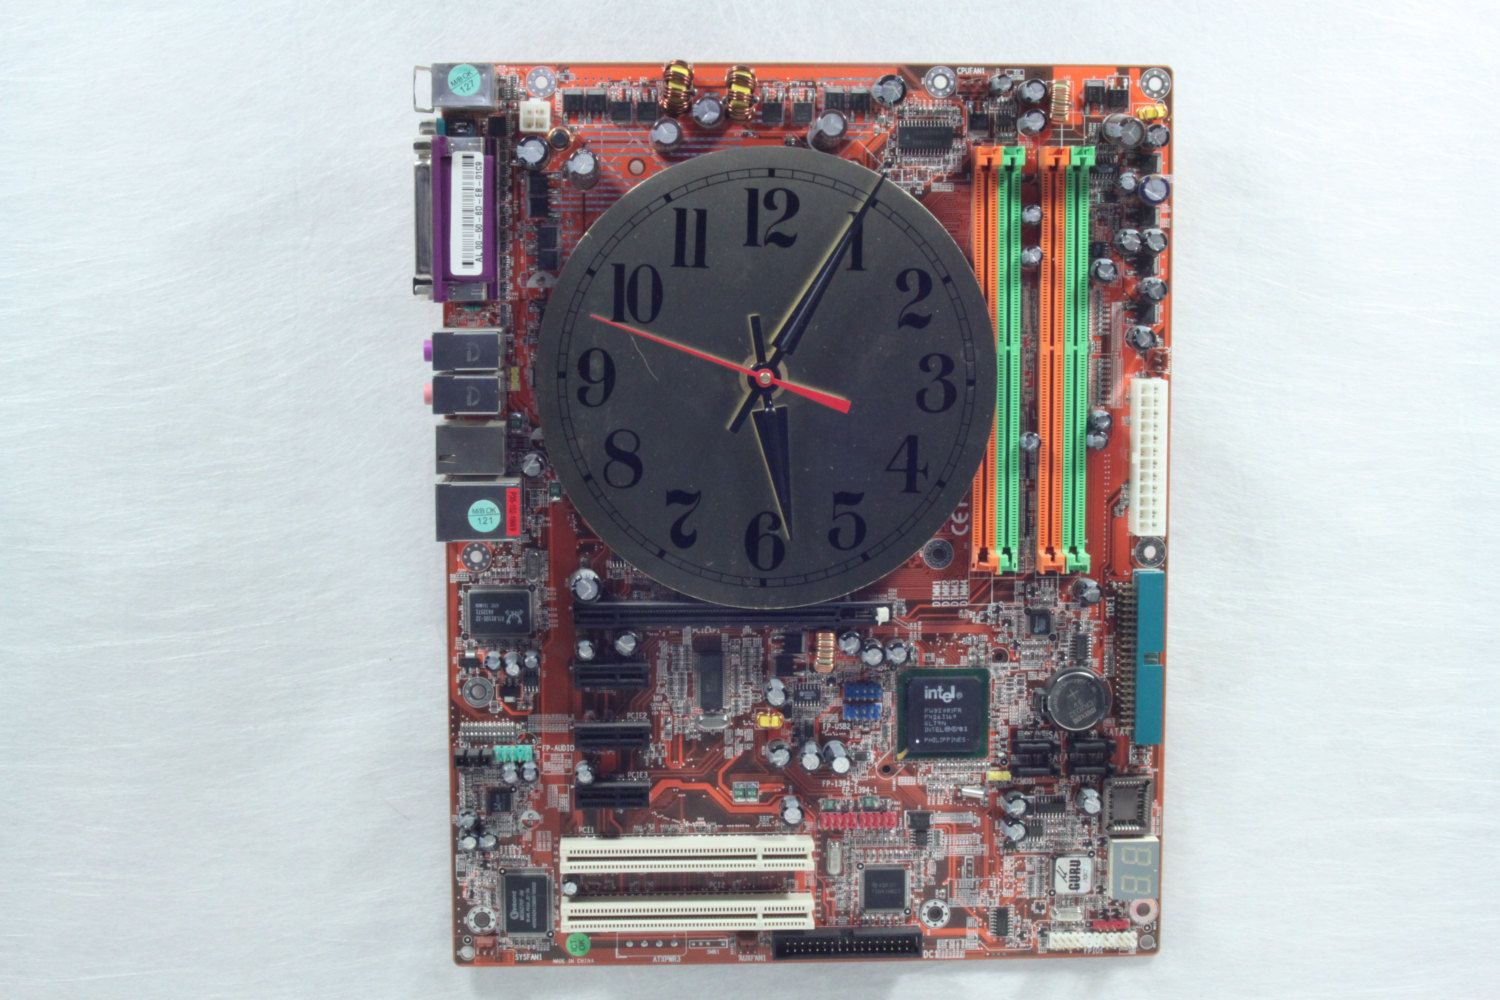 Question 2 The Future Of E Waste Ewaste Can Be Used To Build Pcb Sculptures Artist Upcycles Old Circuit Boards Into Art Abstract Objects Like This Cool Clock Made From A Motherboard Eraseewaste